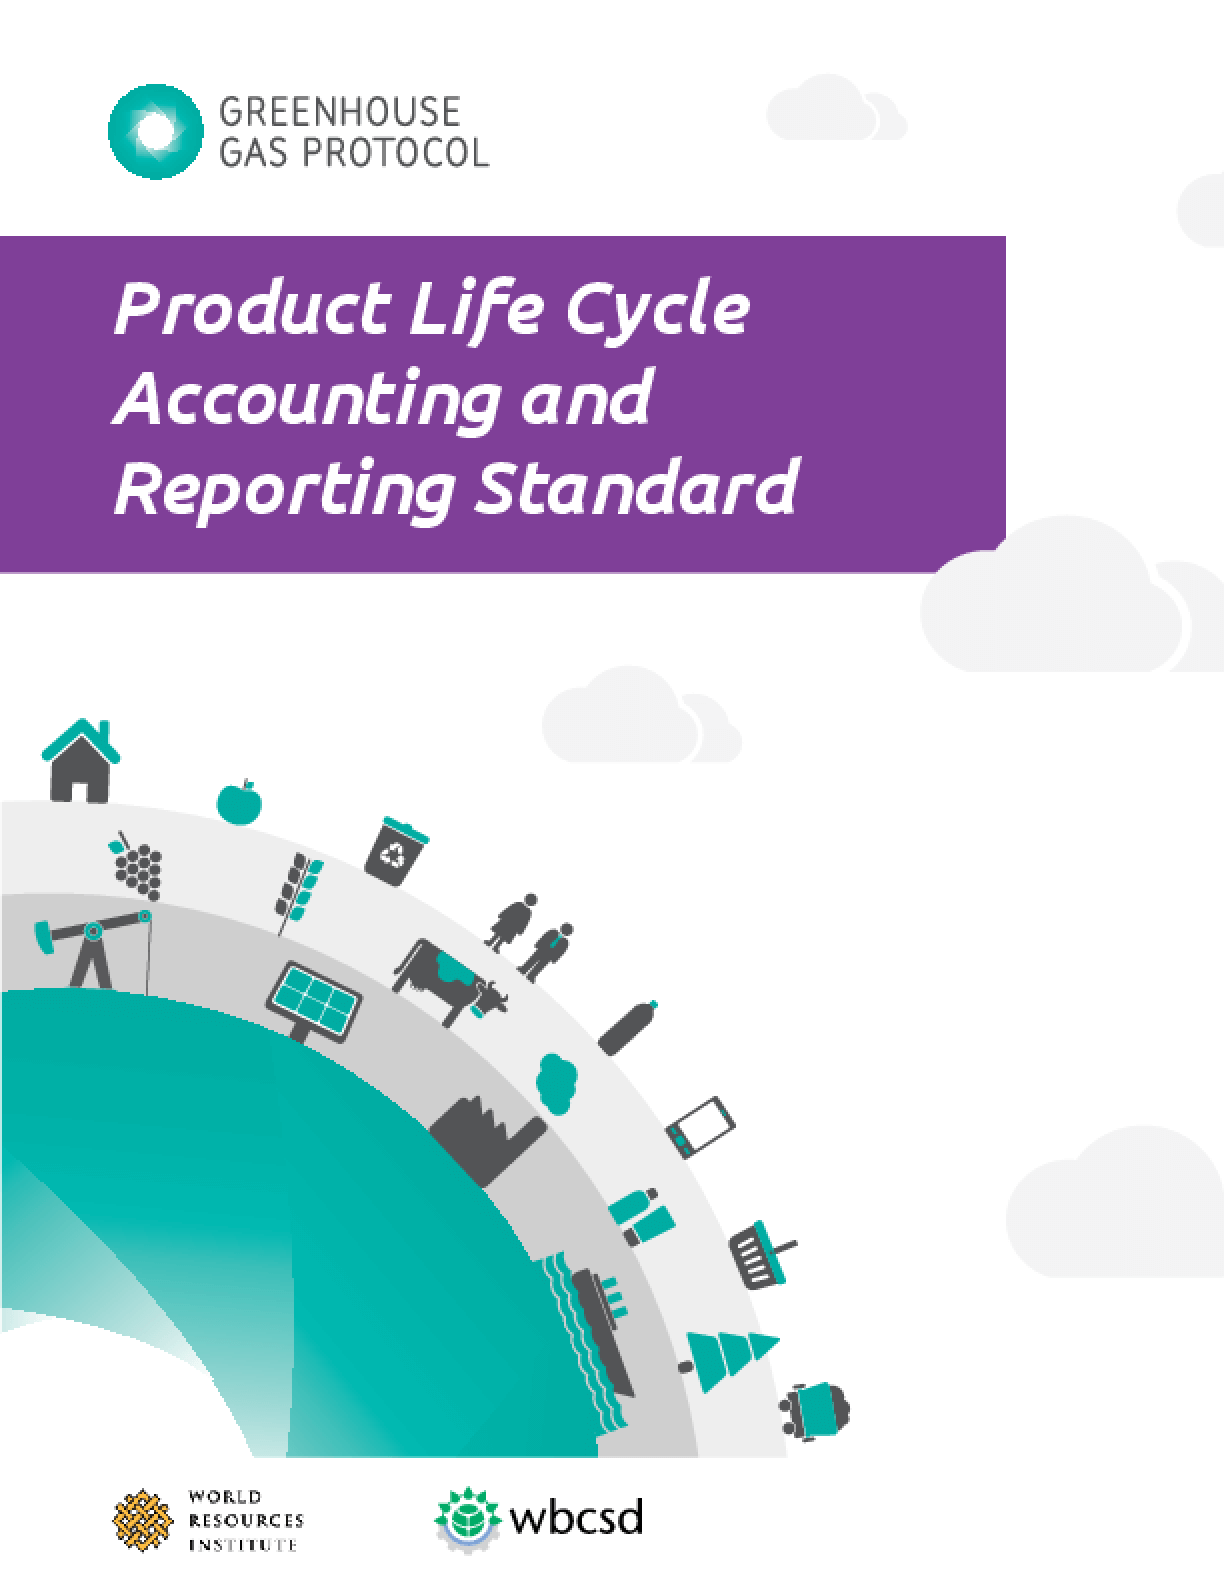 Greenhouse Gas Protocol Product Life Cycle Accounting and Reporting Standard